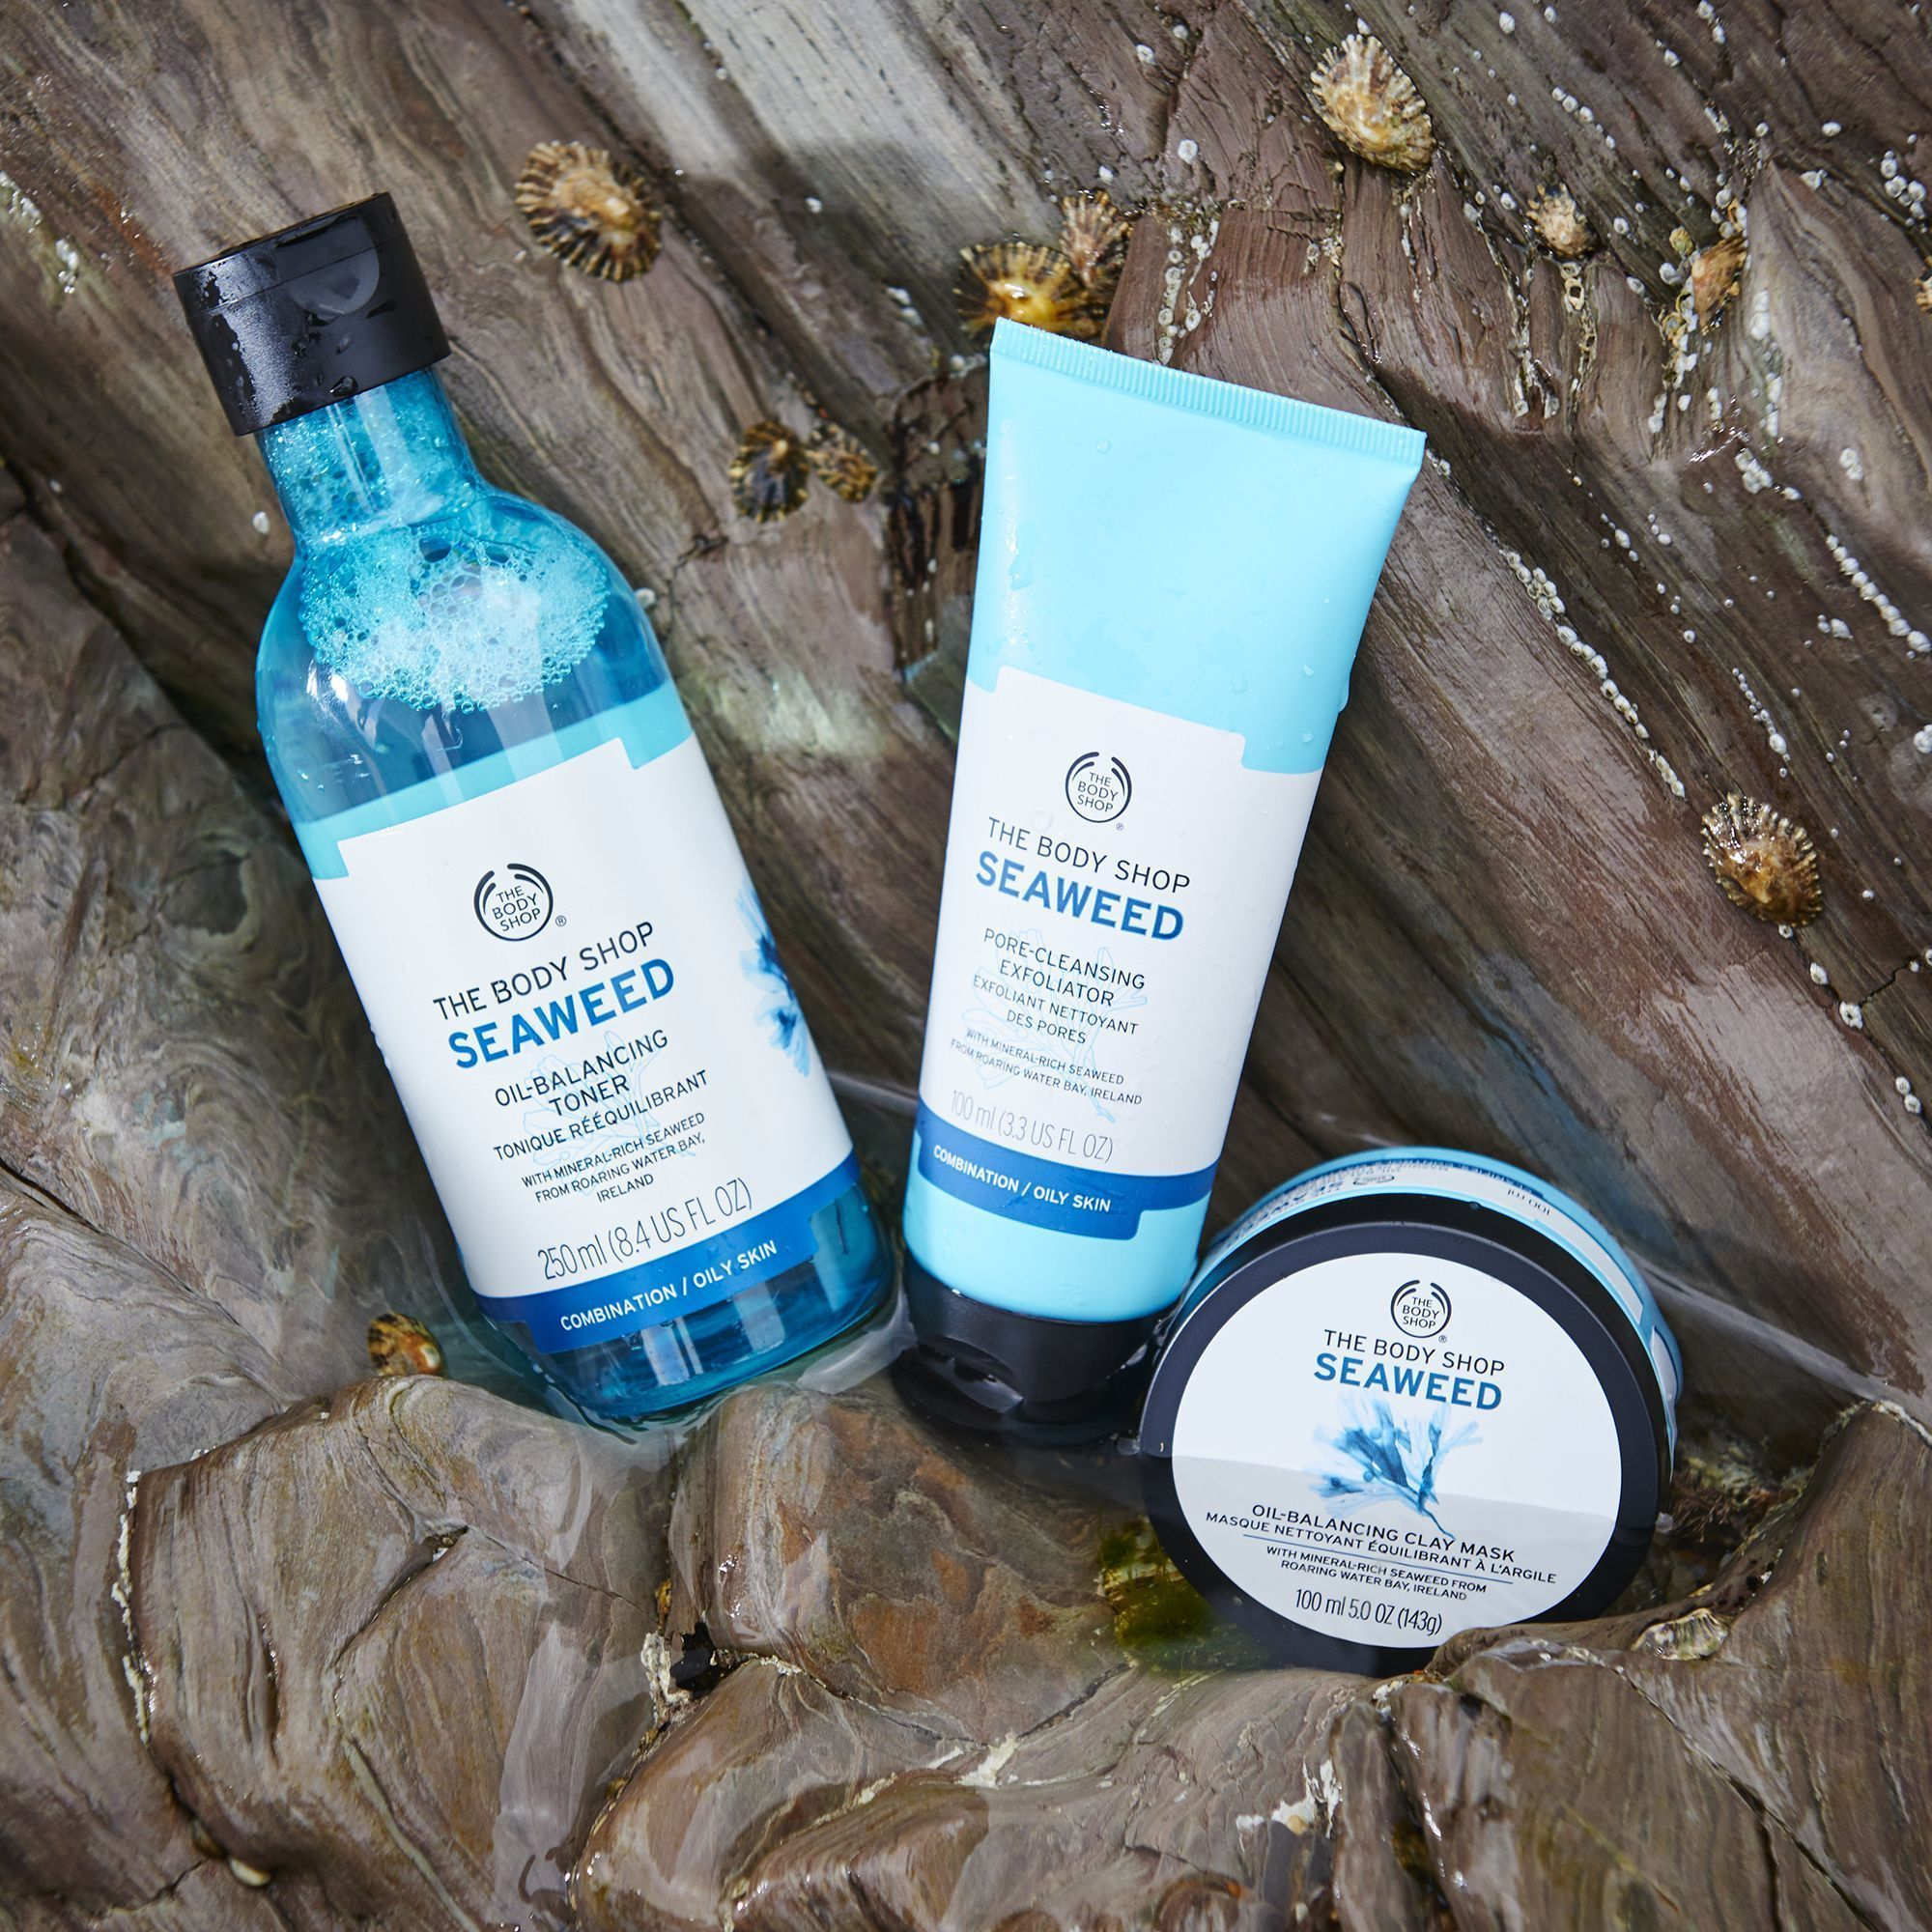 Designed For Combination Skin Our Seaweed Range Helps To Restore Balance And Control Excess Oil To Help Give Body Shop Skincare The Body Shop Combination Skin